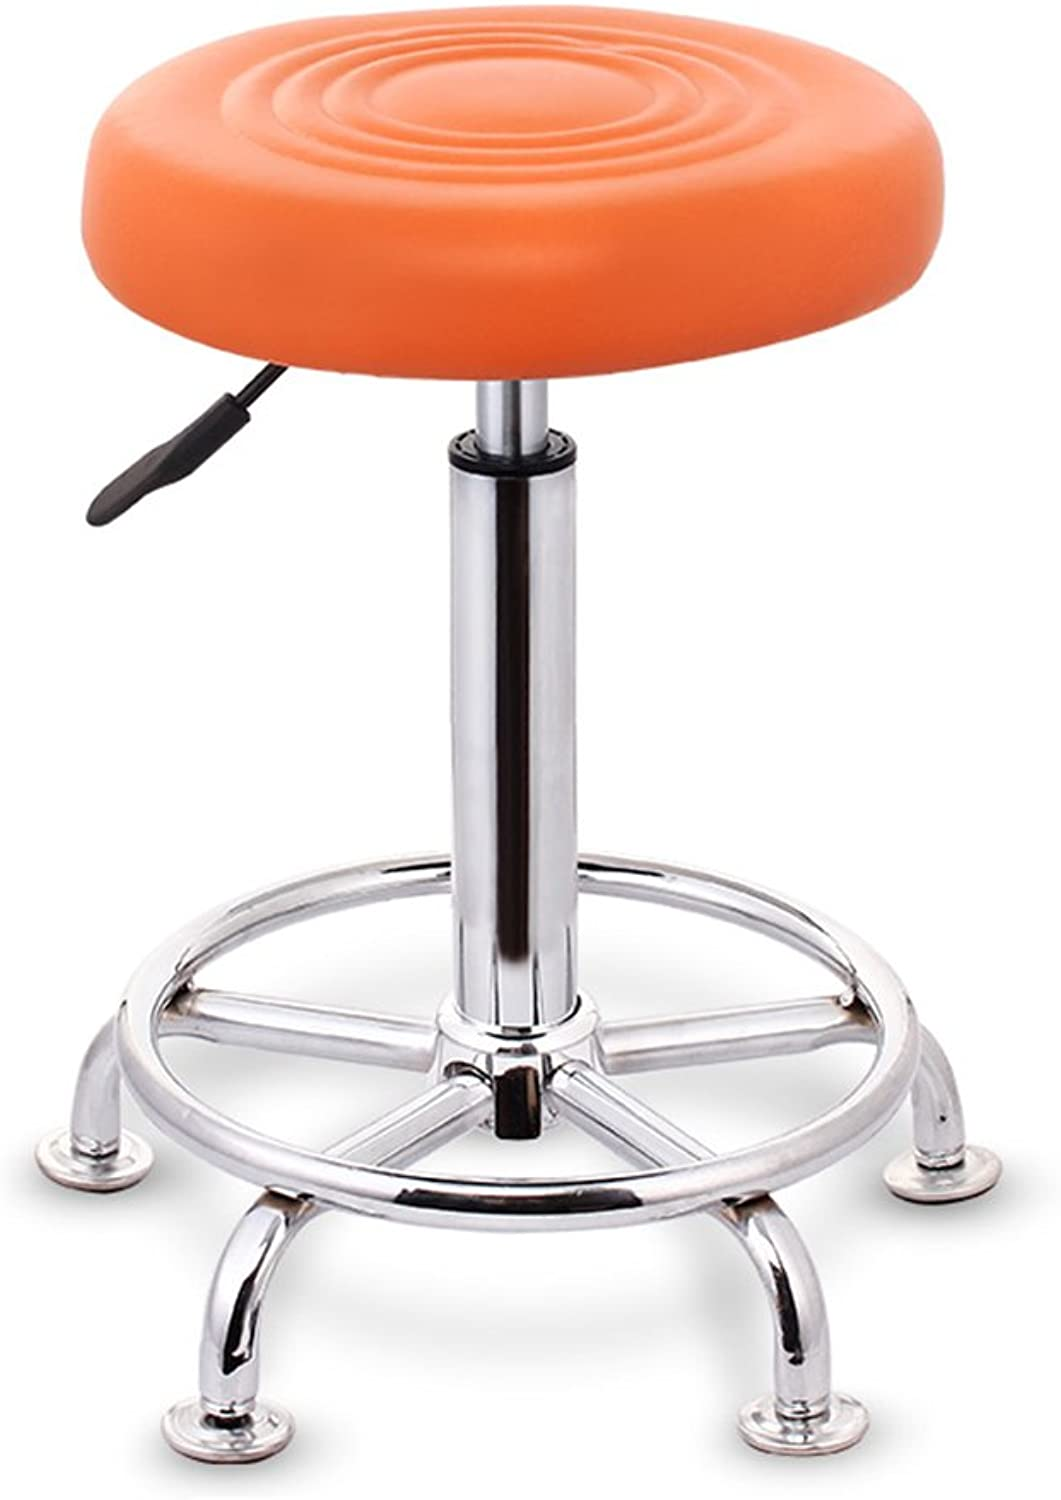 GJM Shop Bar Stools PU Bar Stools Kitchen Stools Breakfast Gas Strut Adjustable Seat Height 43 to 58cm Easy to Move (color   orange)